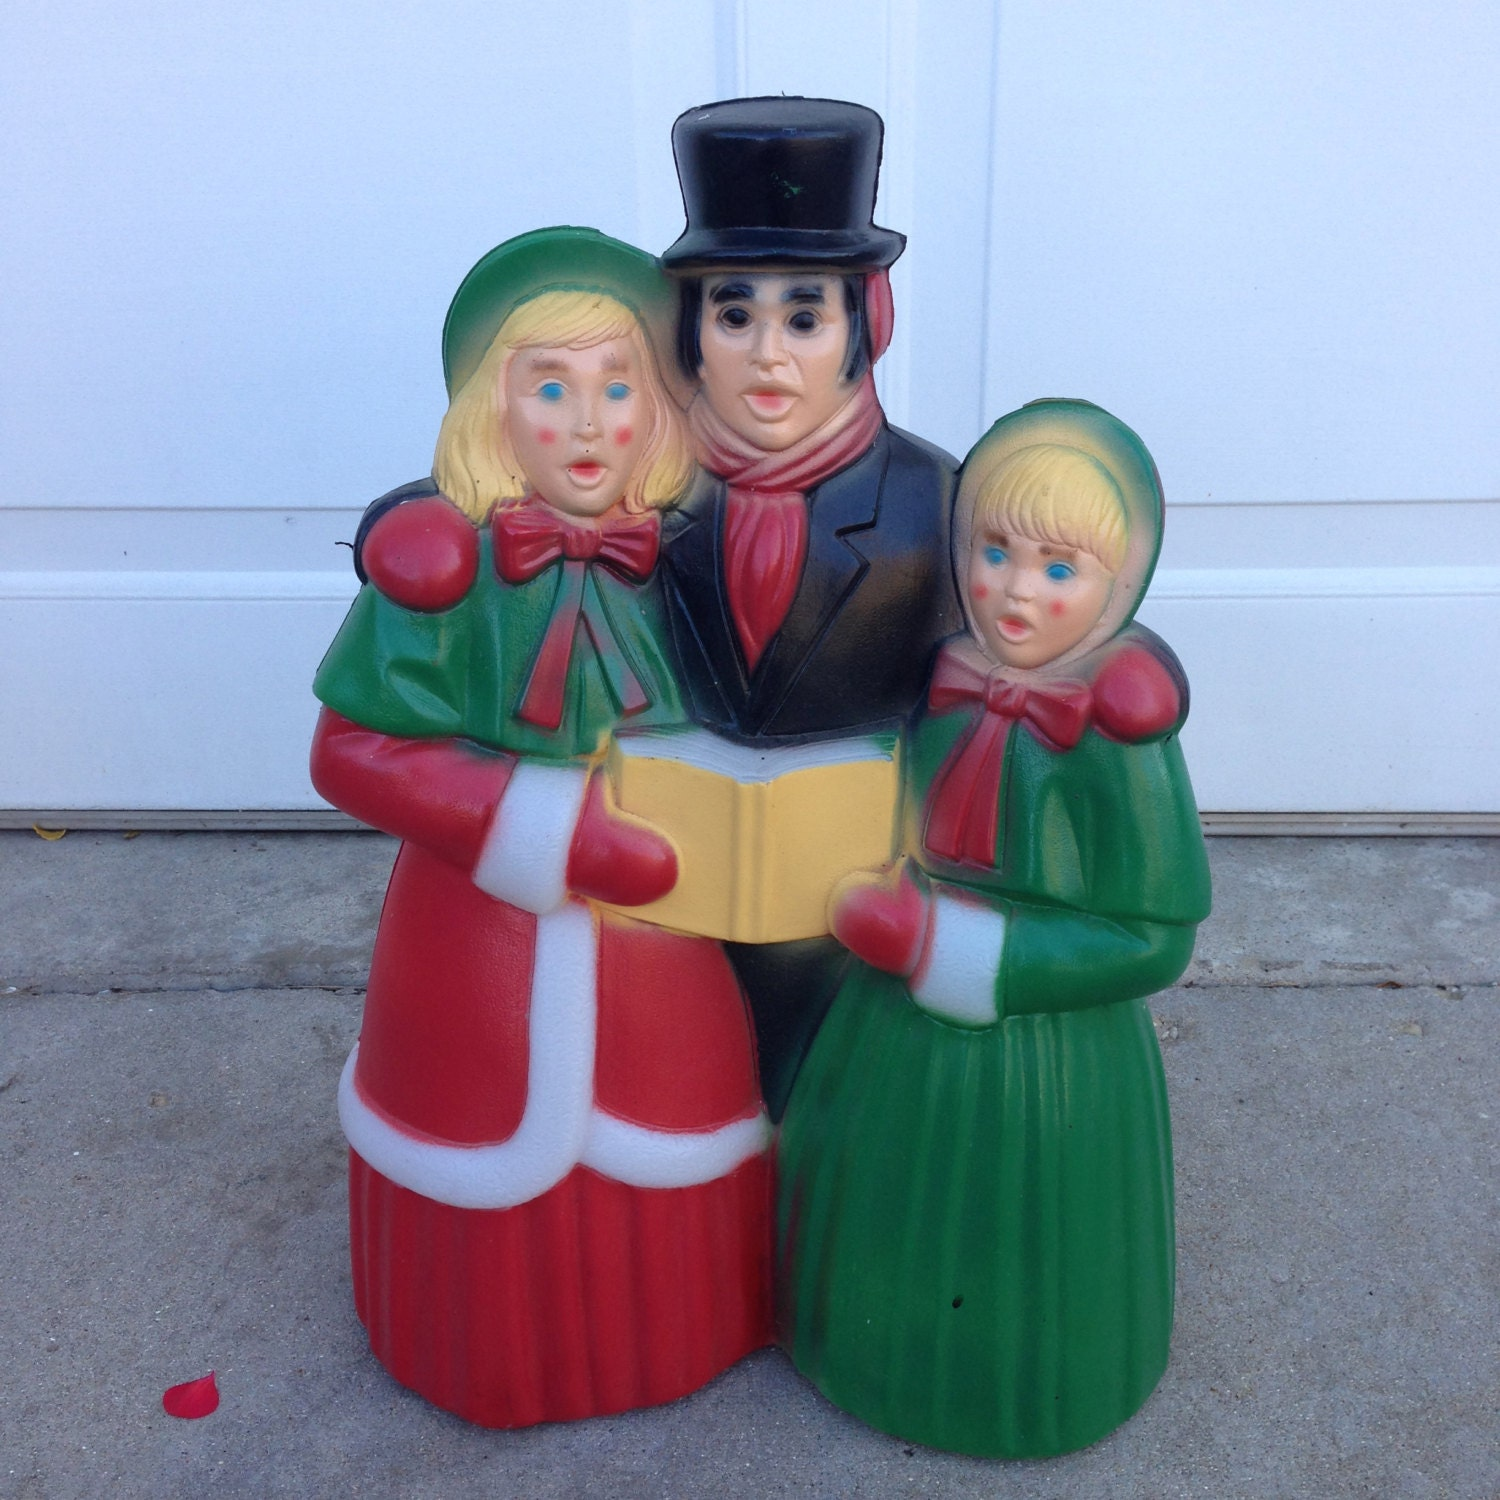 Christmas Carolers Yard Decorations: Vintage Blow Mold Christmas Carolers Christmas Lawn Decor